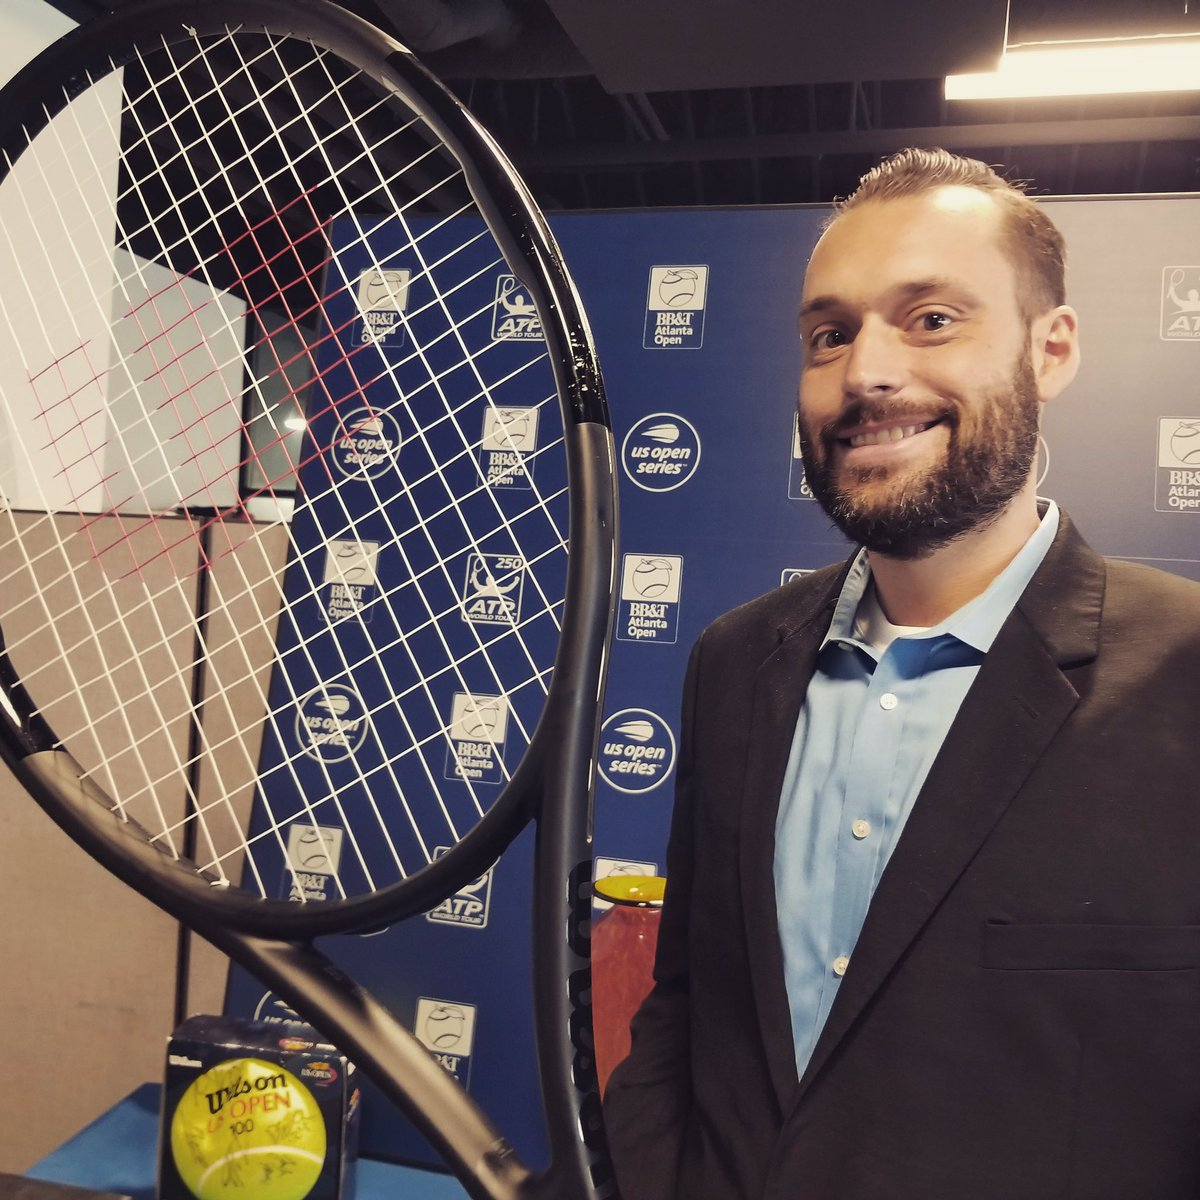 Join us in welcoming our new ticketing manager, Trevor Allison, to the #AtlantaOpen team!